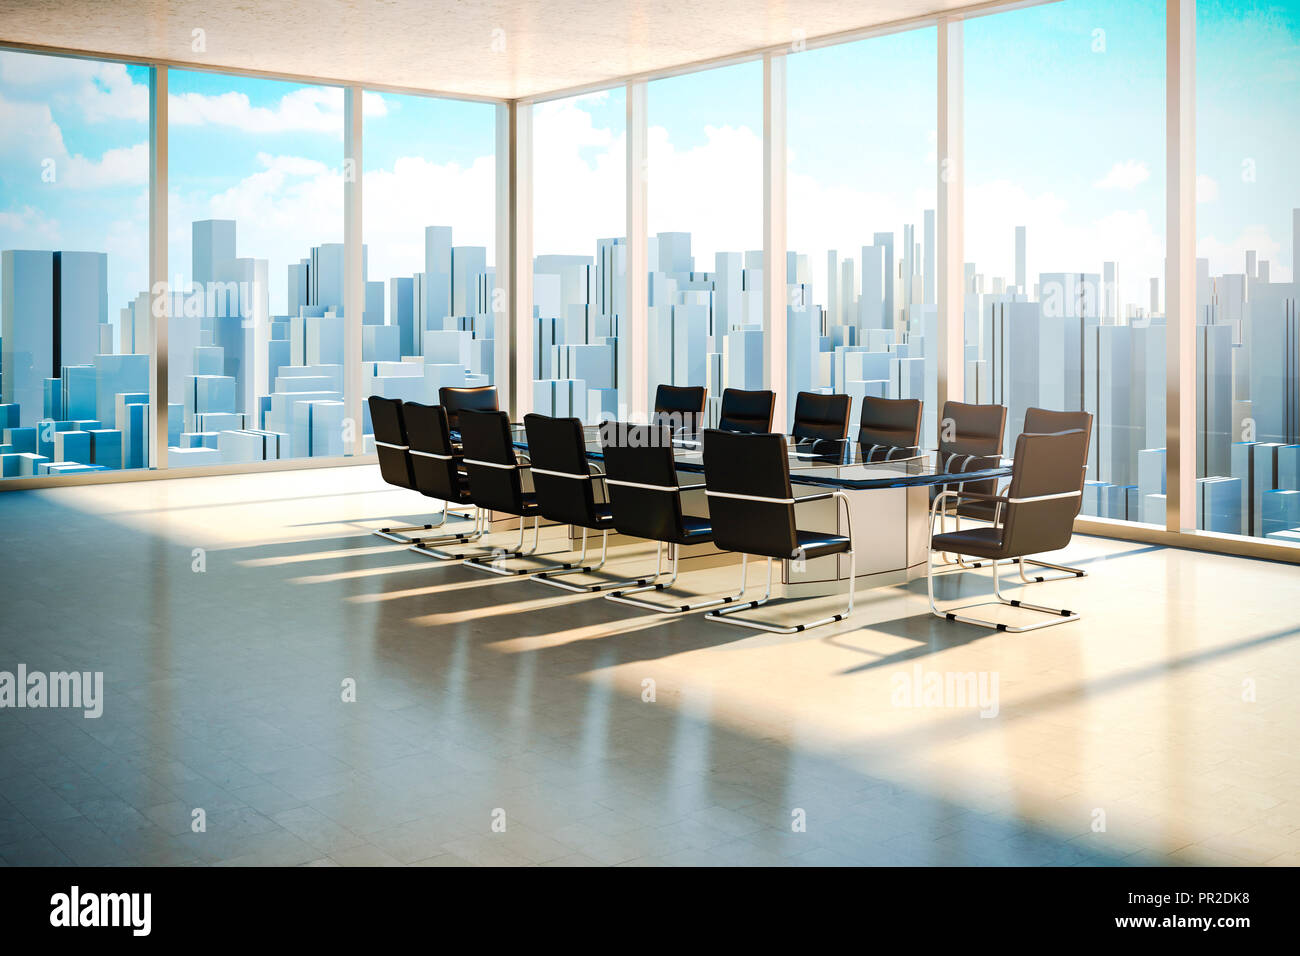 Modern Office Interior With Beautiful Worm Daylight And City Skyline In The Background Stock Photo Alamy